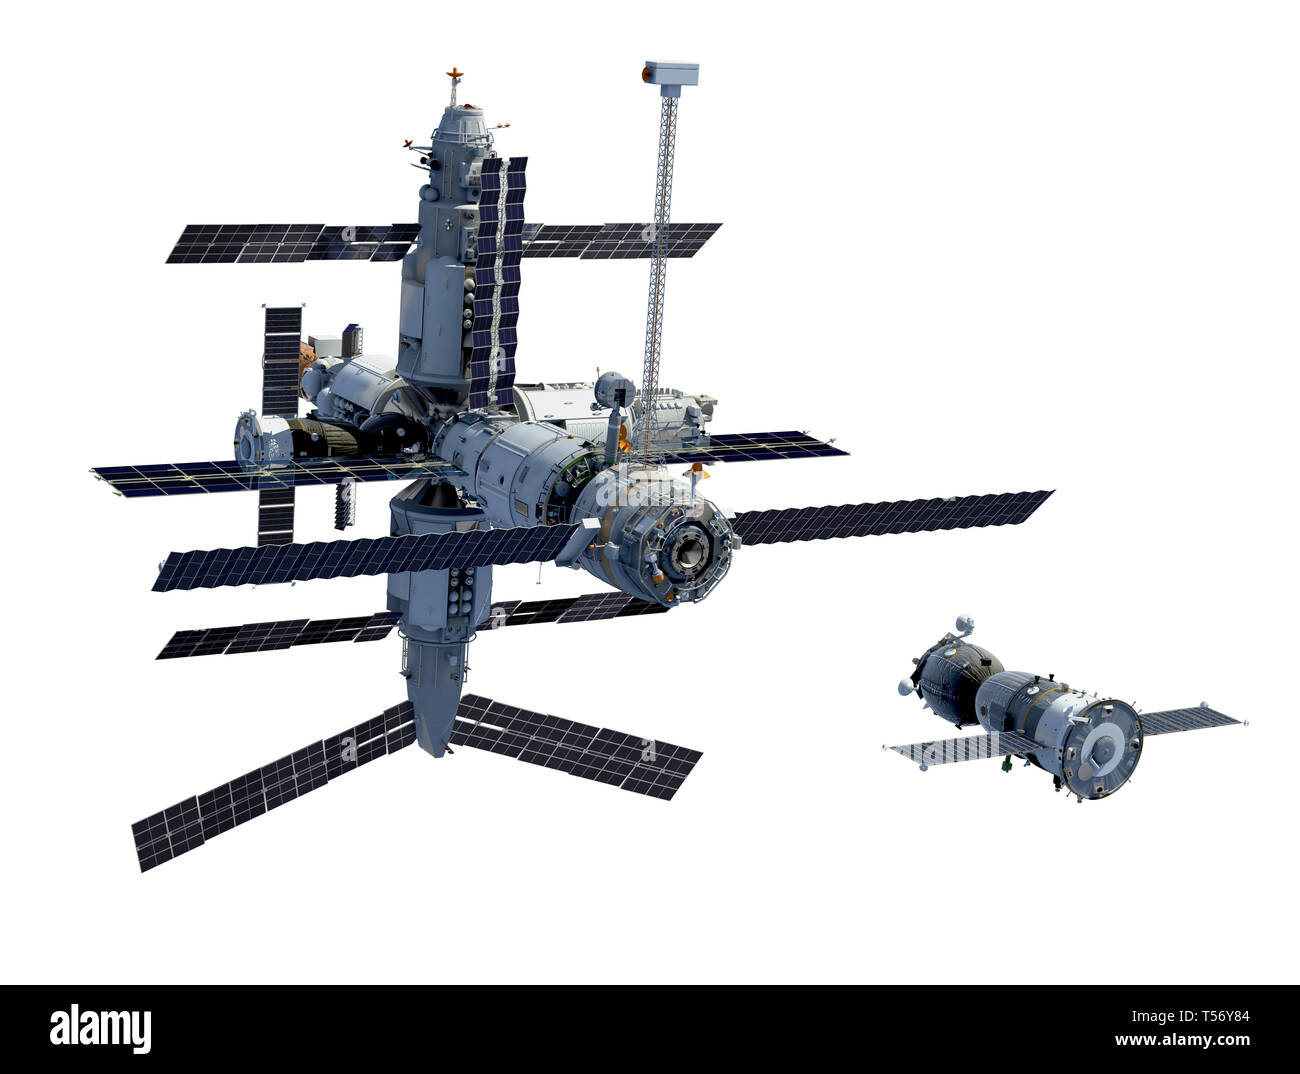 Space Station And Spacecraft Isolated On White Background. 3D Illustration. Stock Photo